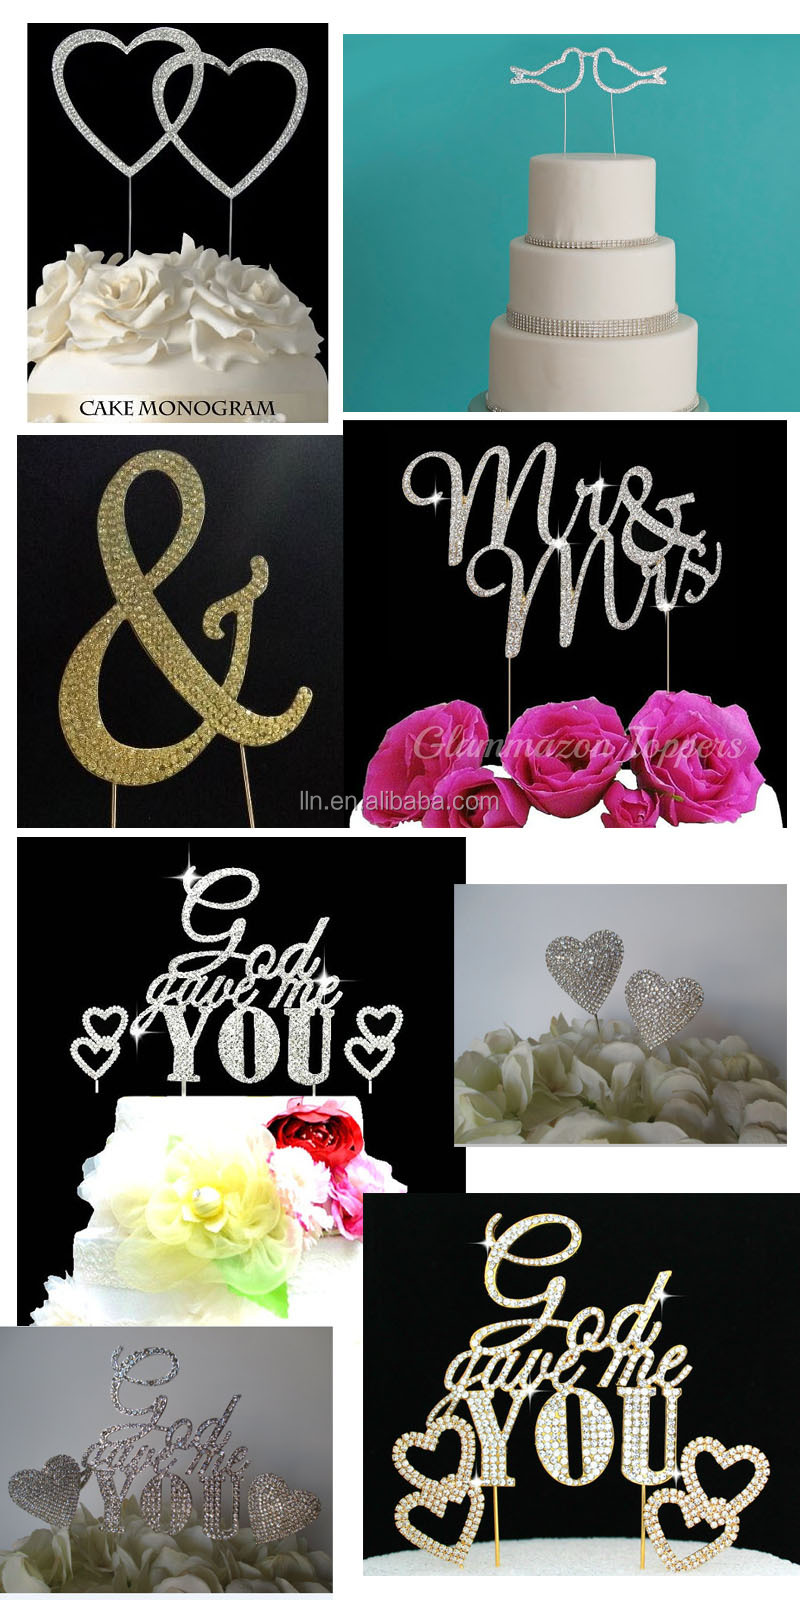 Mr & Mrs and Butterfly rhinestone cake topper /funny wedding cake toppers